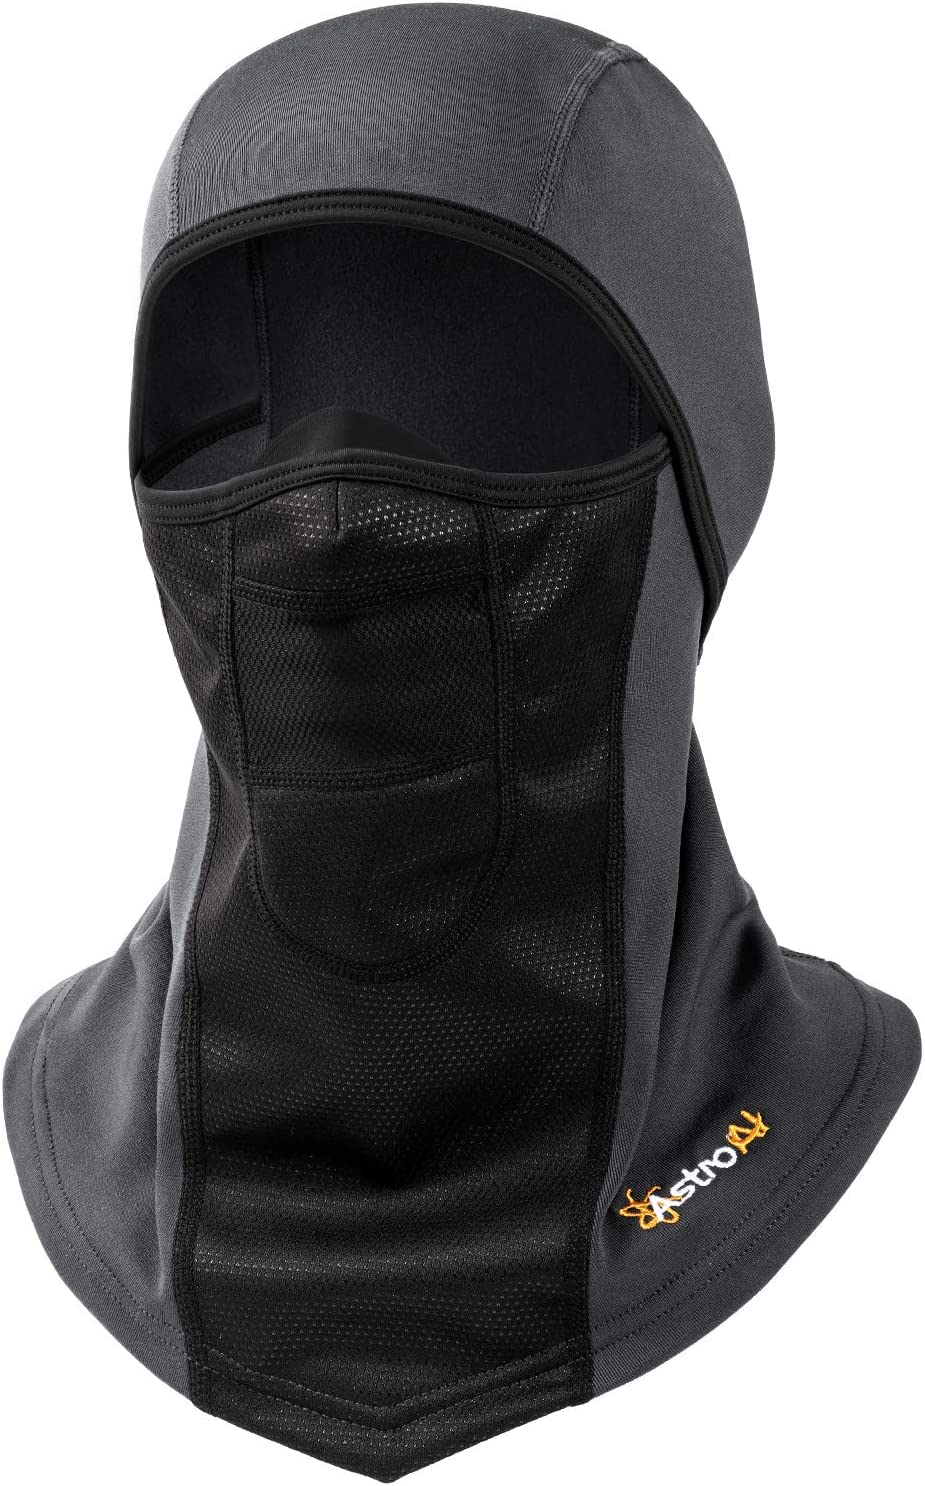 AstroAI Balaclava for Cold Weather